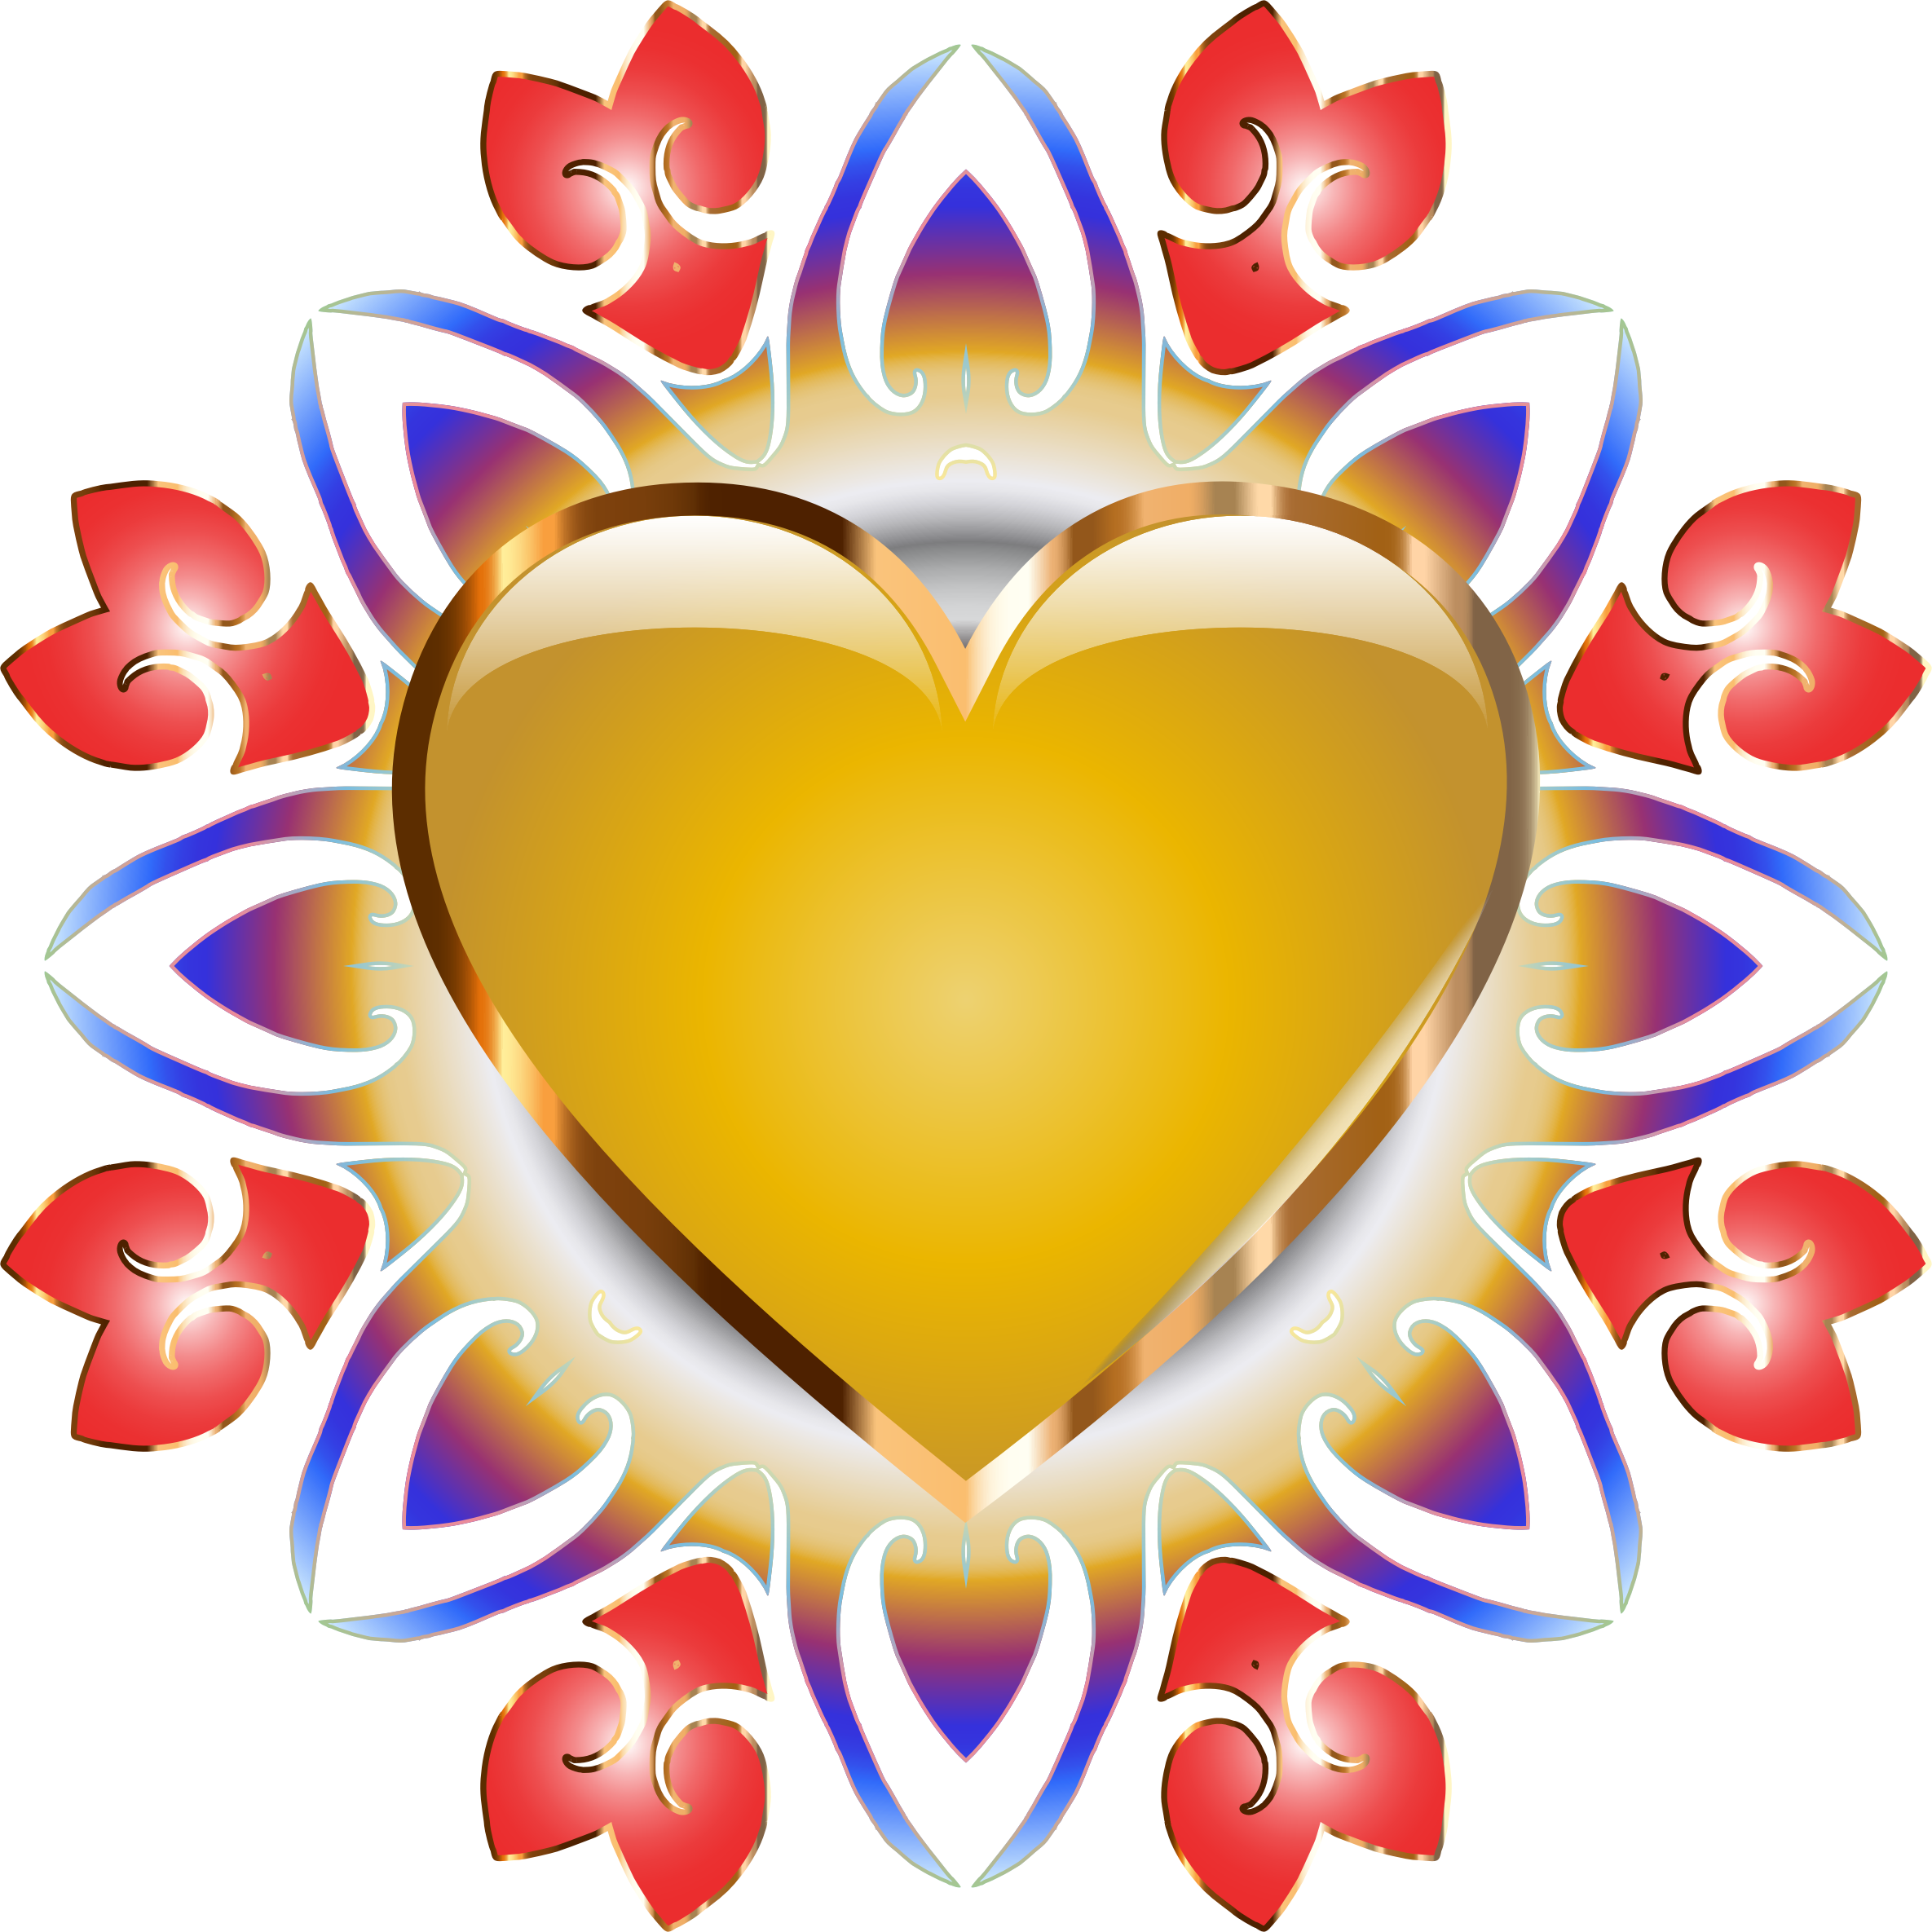 Clipart heart design. Abstract no background big